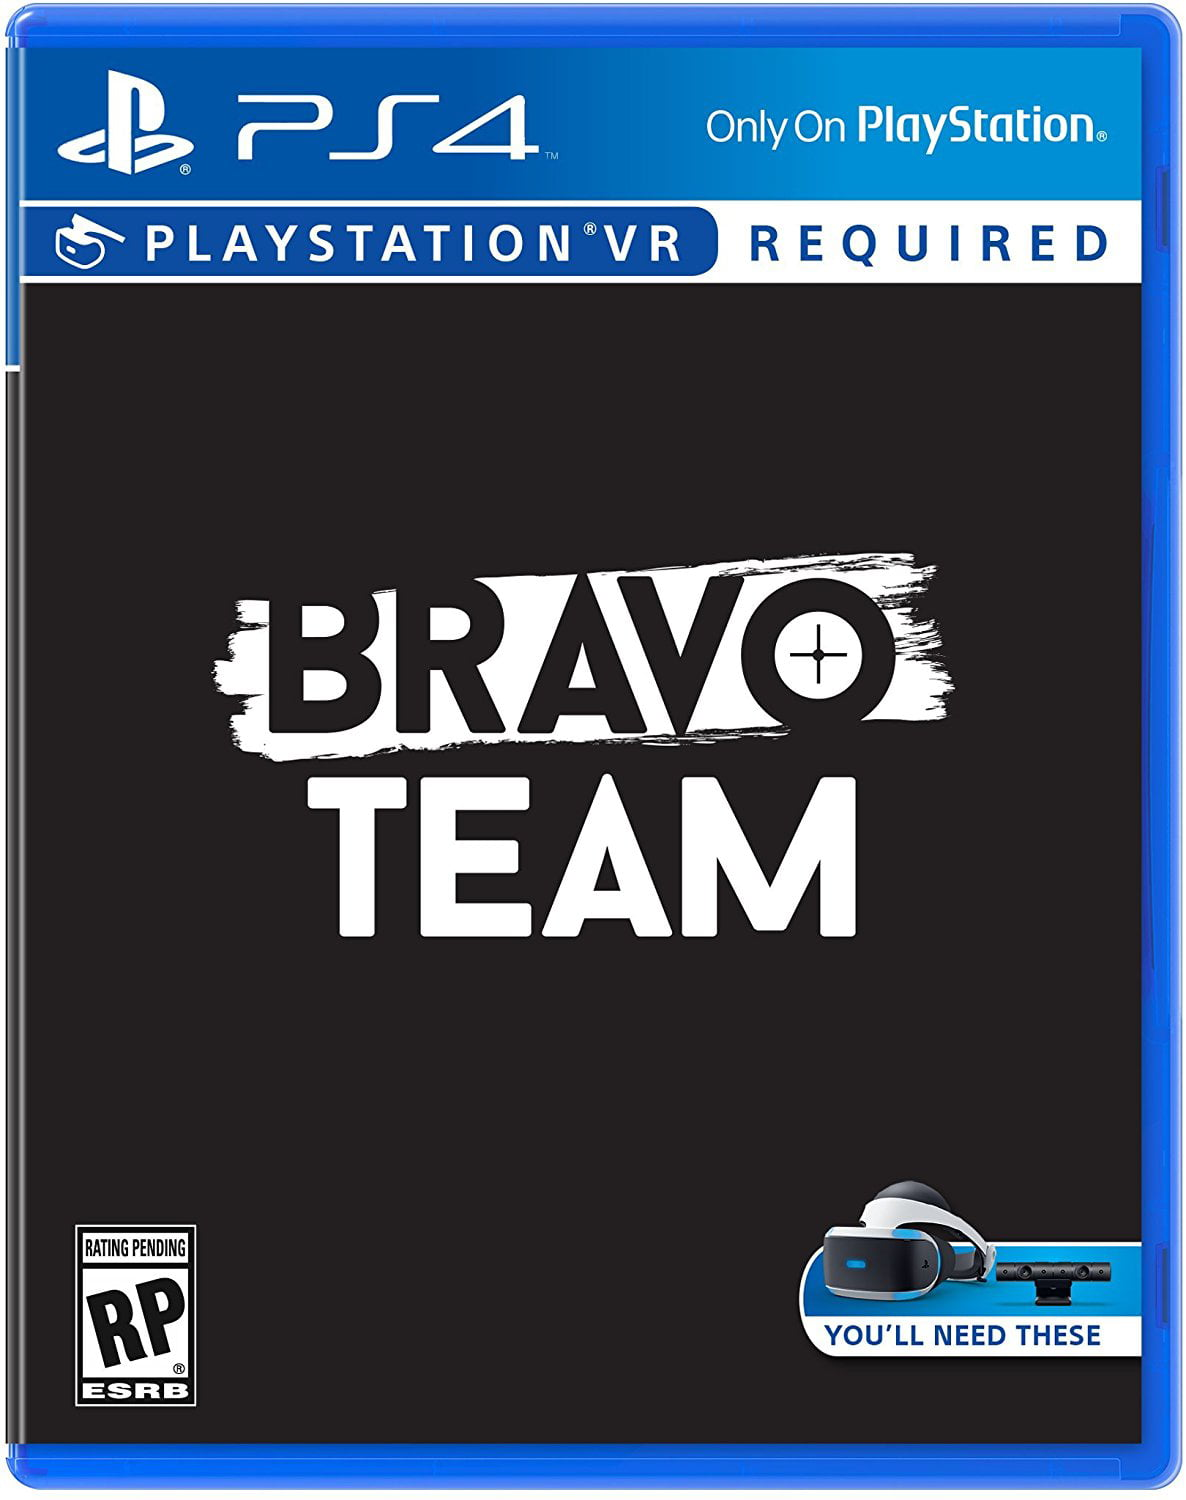 Bravo Team VR, Sony, PlayStation 4, 711719510567 by SONY INTERACTIVE ENTERTAINMENT AMERICA